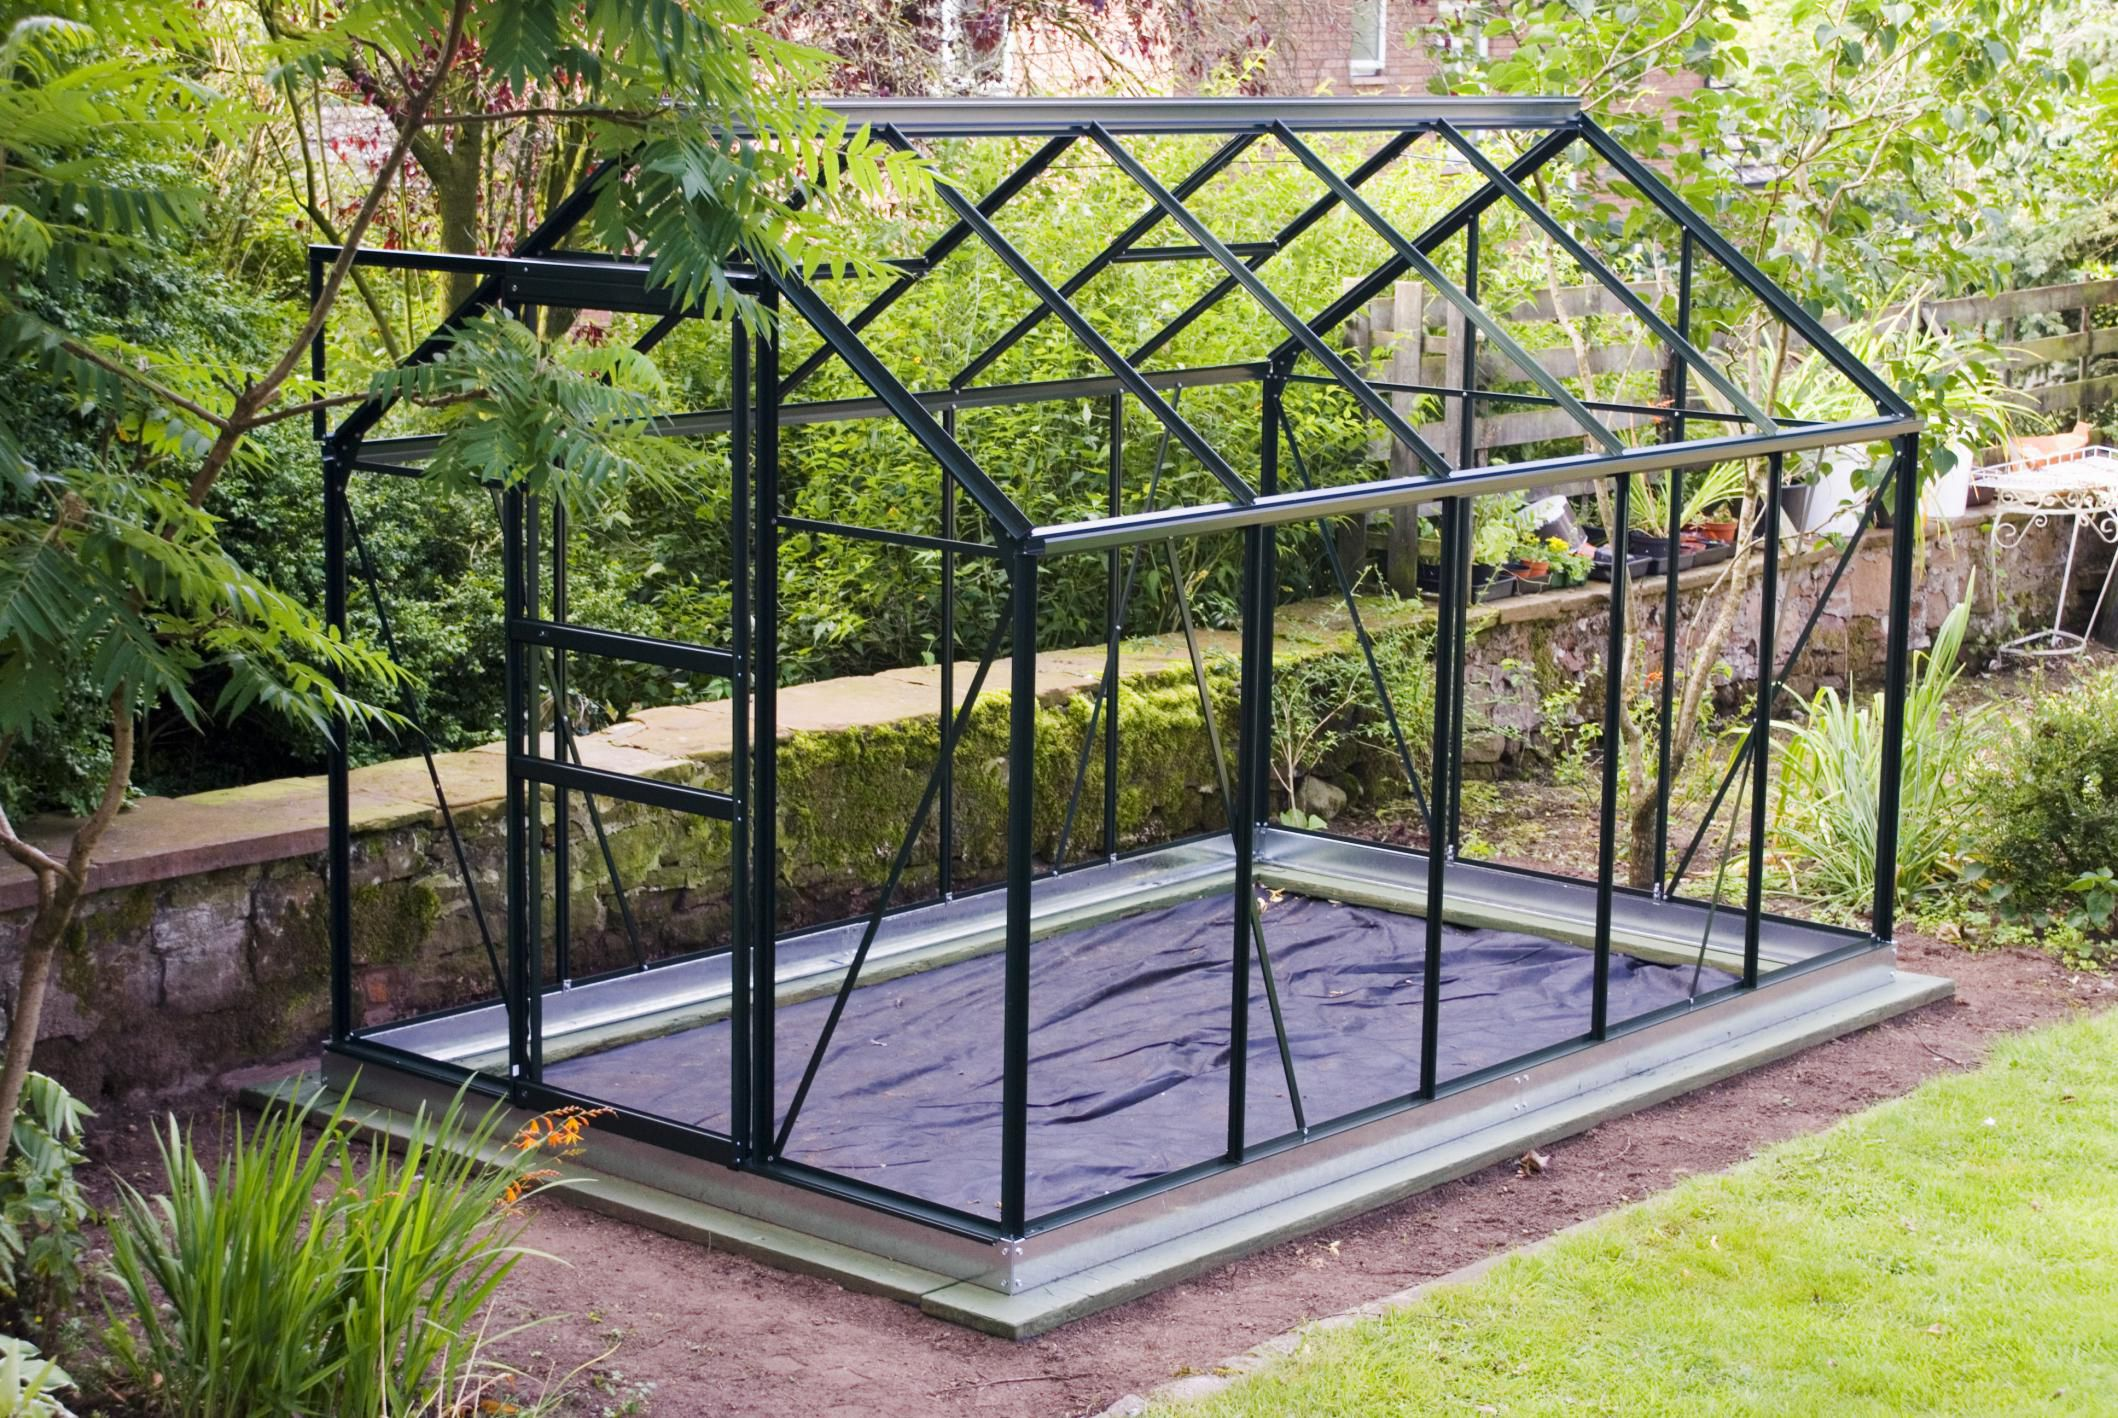 4 Options For Framing Material A Greenhouse Pipes Electrical Wiring Metal Pvc And Pe Compare Evaluate